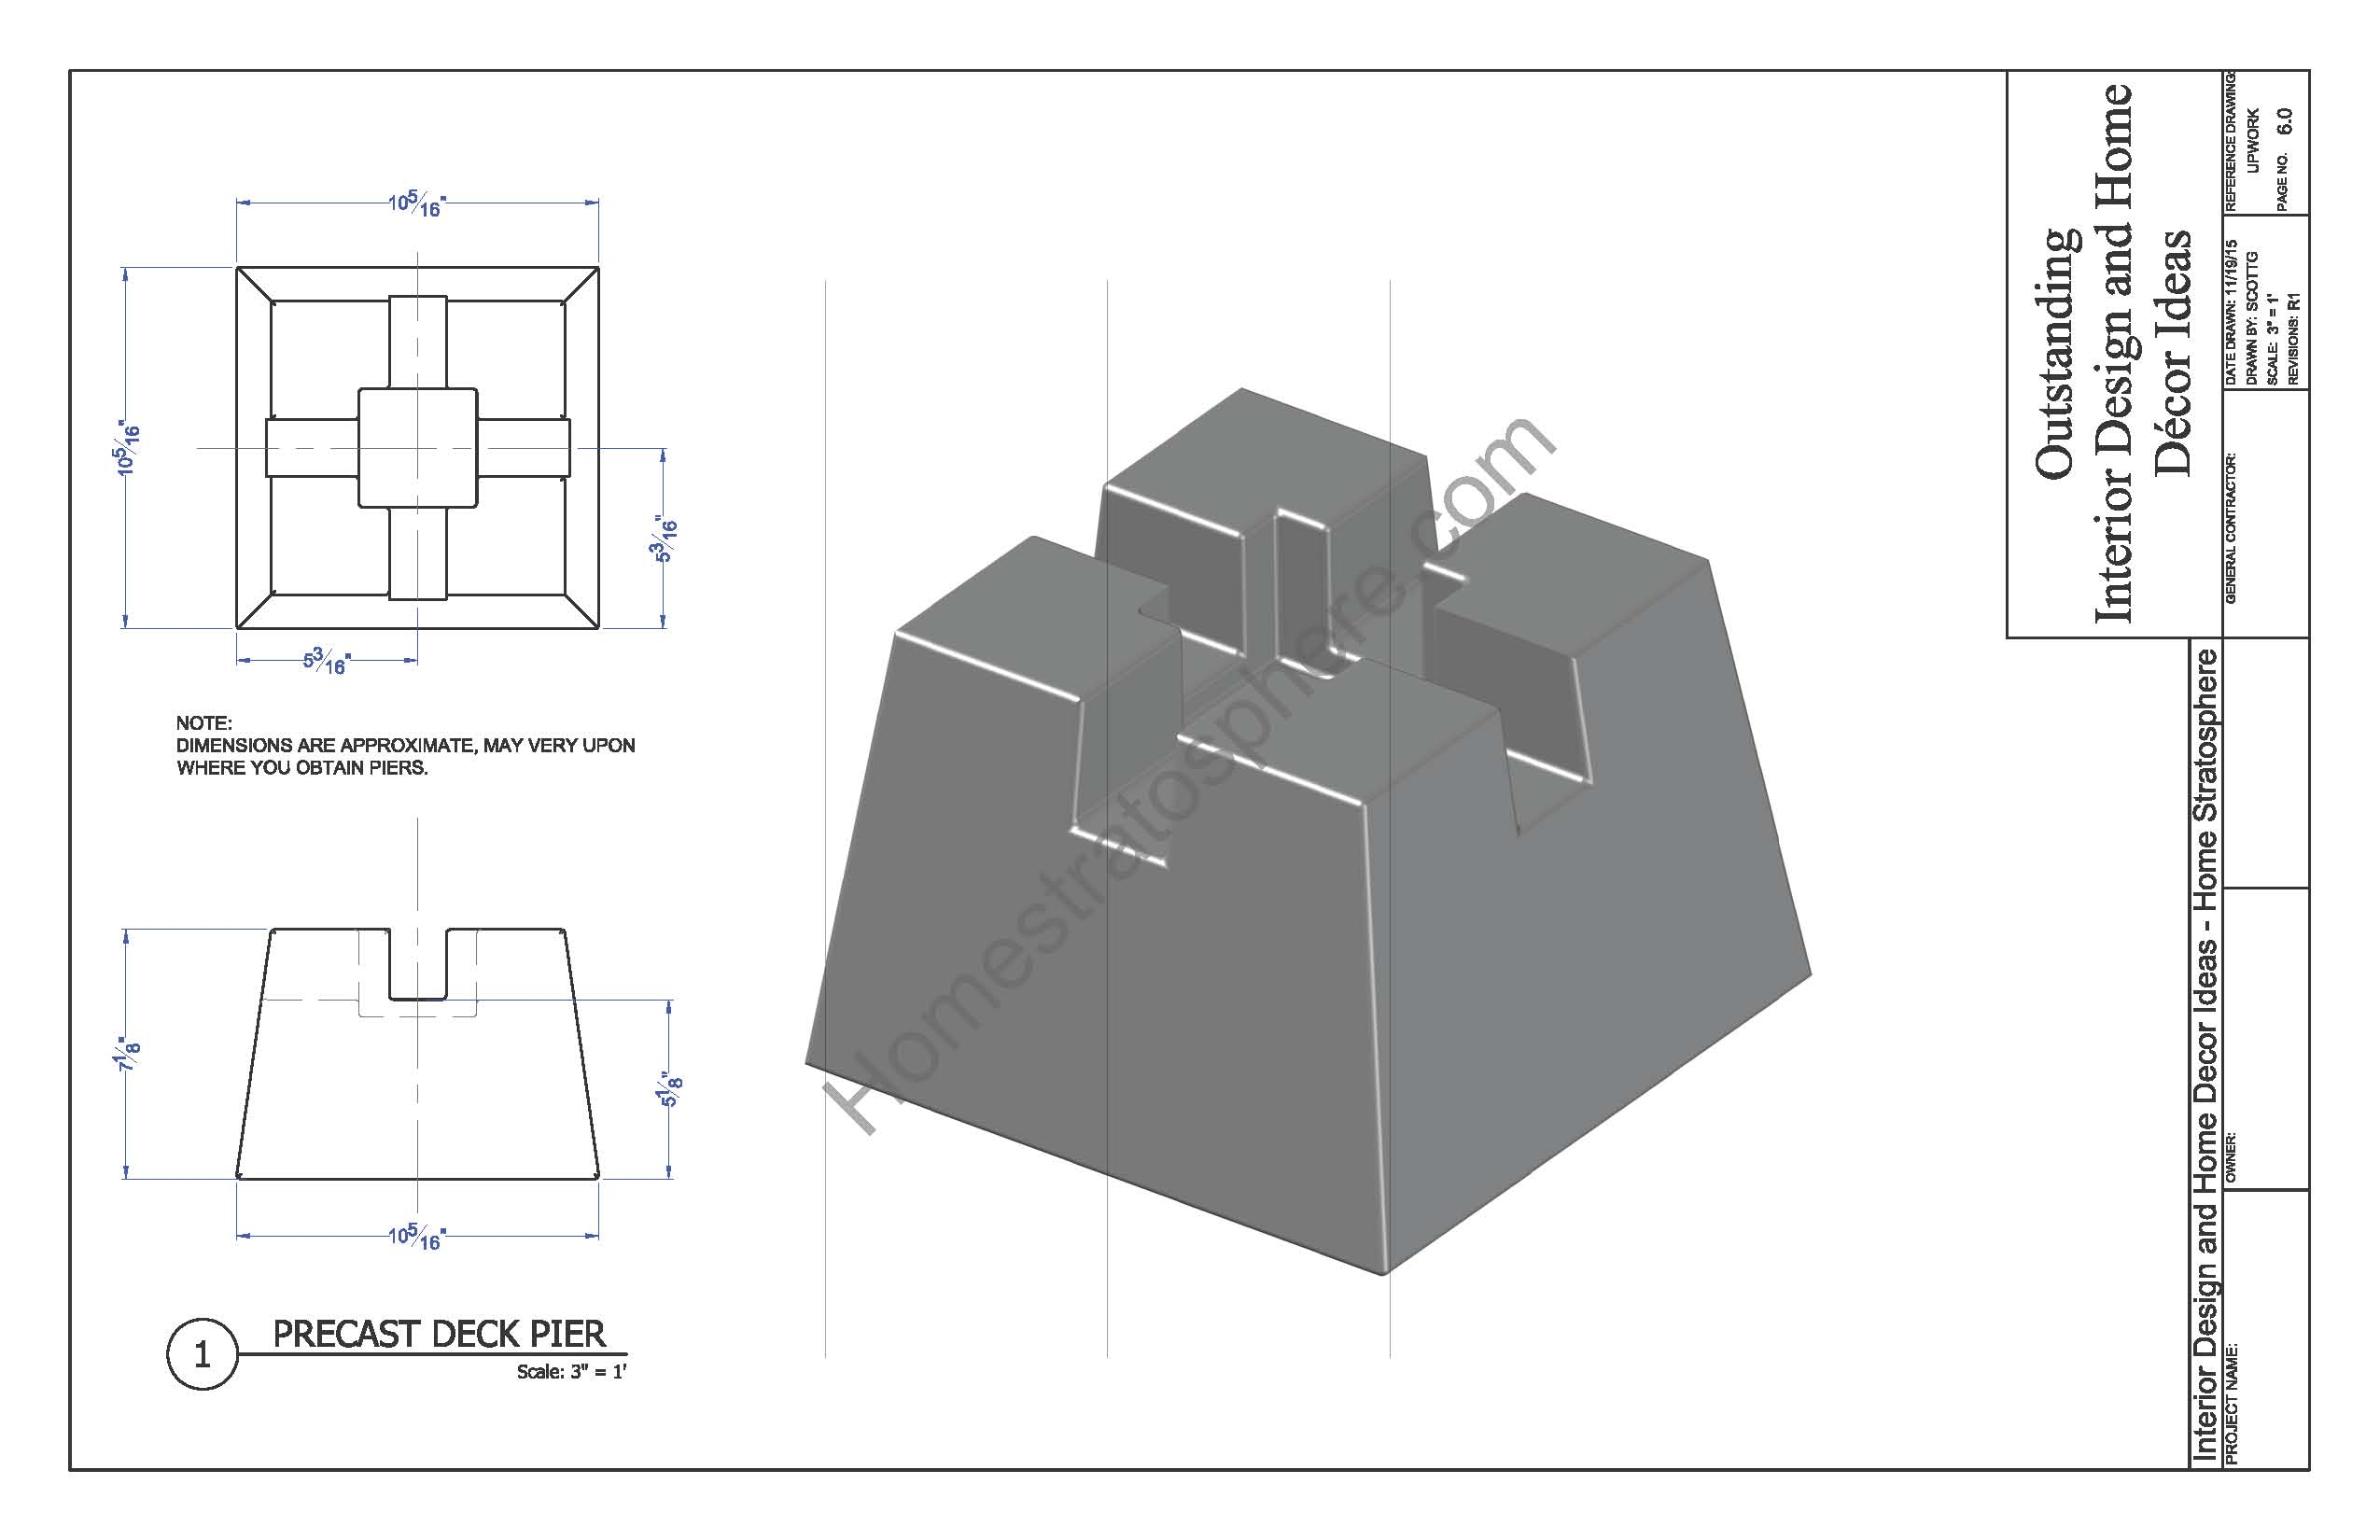 Free ground flat deck plan with pdf blueprint download for Ground level deck plans pdf